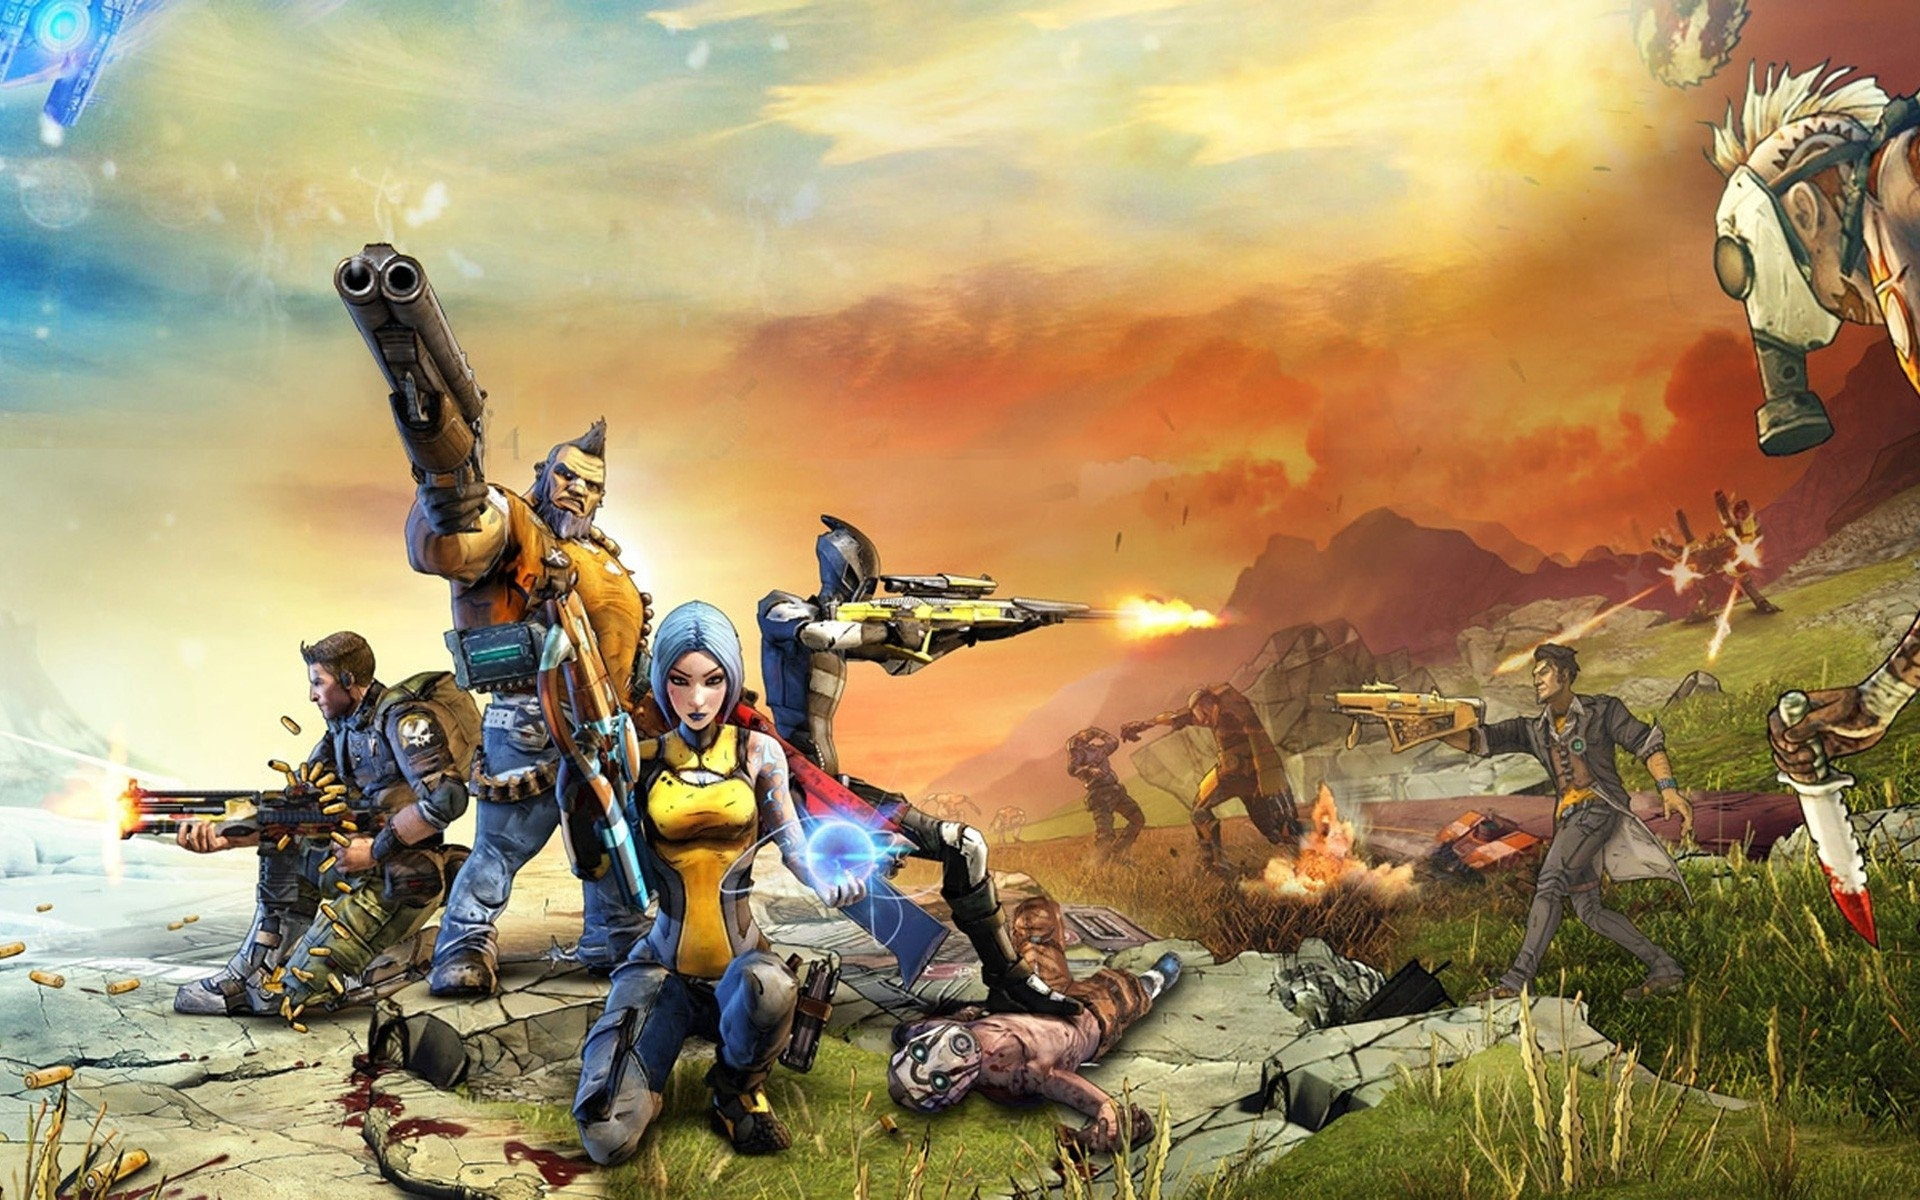 10 Top Borderlands 2 Hd Wallpaper FULL HD 1920×1080 For PC Desktop